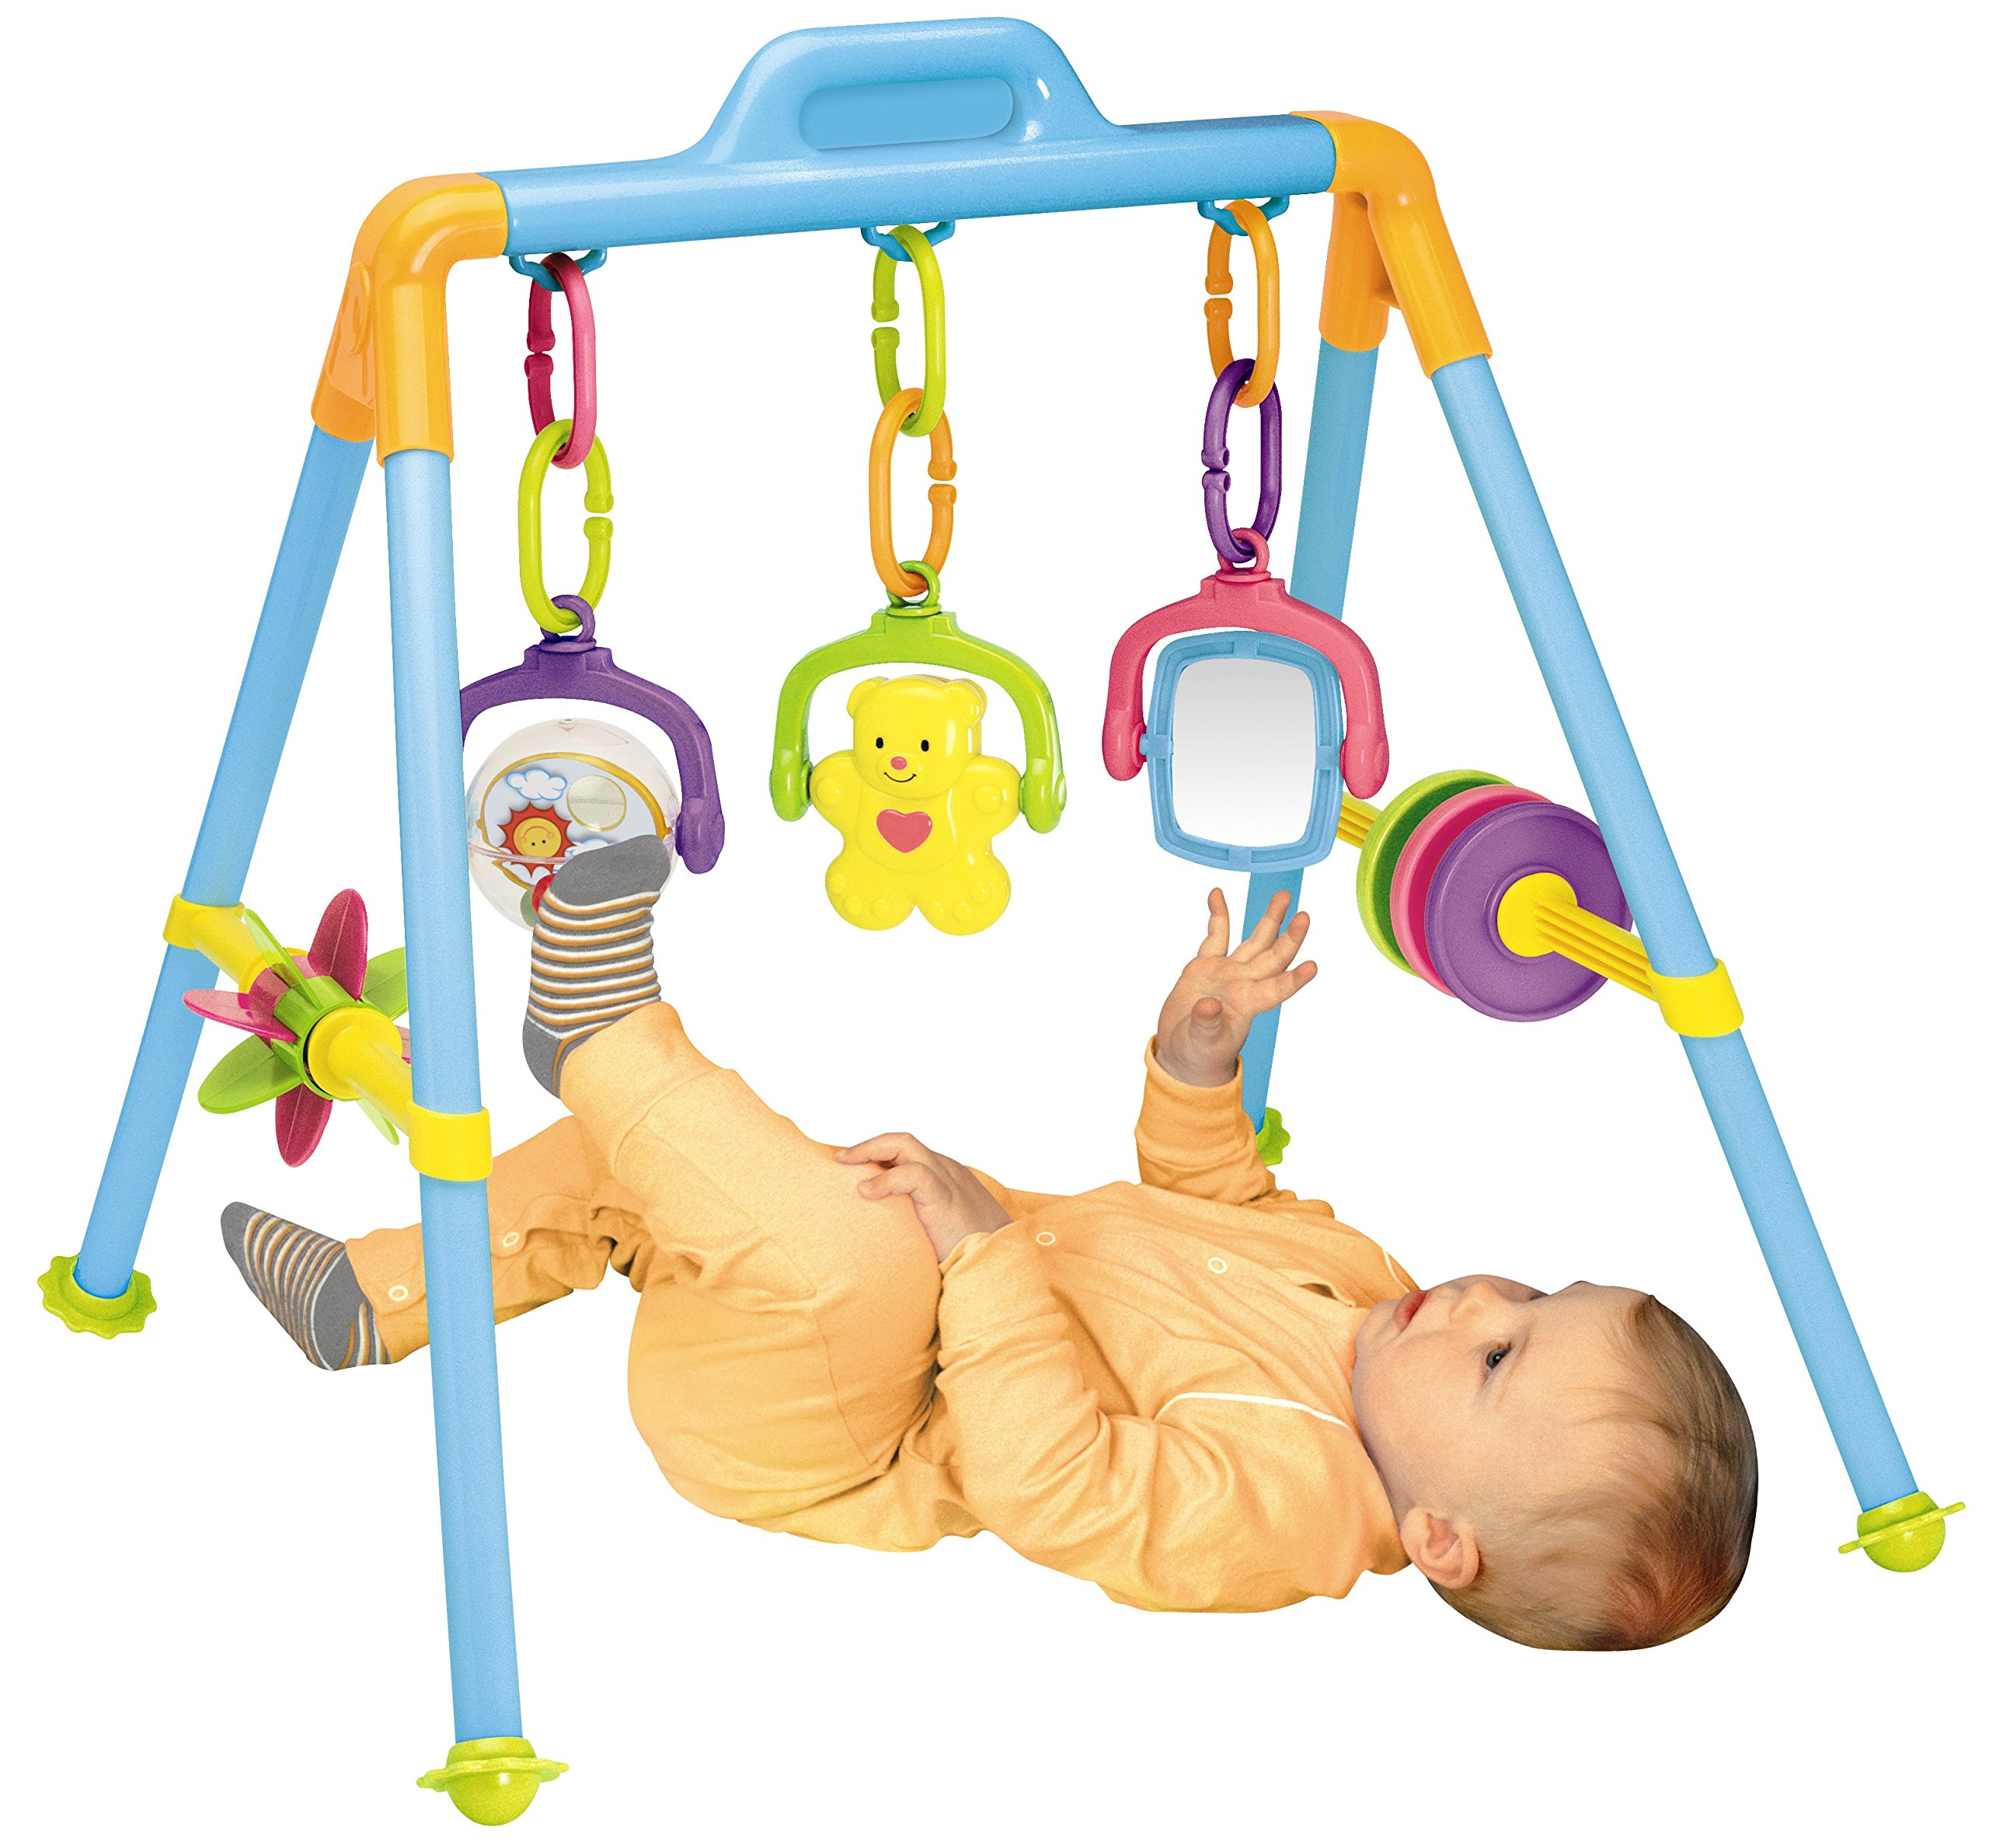 Little Bambino Fitness Frame Baby Fitness Frame Activity Gym Music Hanging Bell Early Educational Intelligence Game Toy Set Baby Kick and Gym Play Pushchair Hanging Toys Gift for Newborns Toddlers